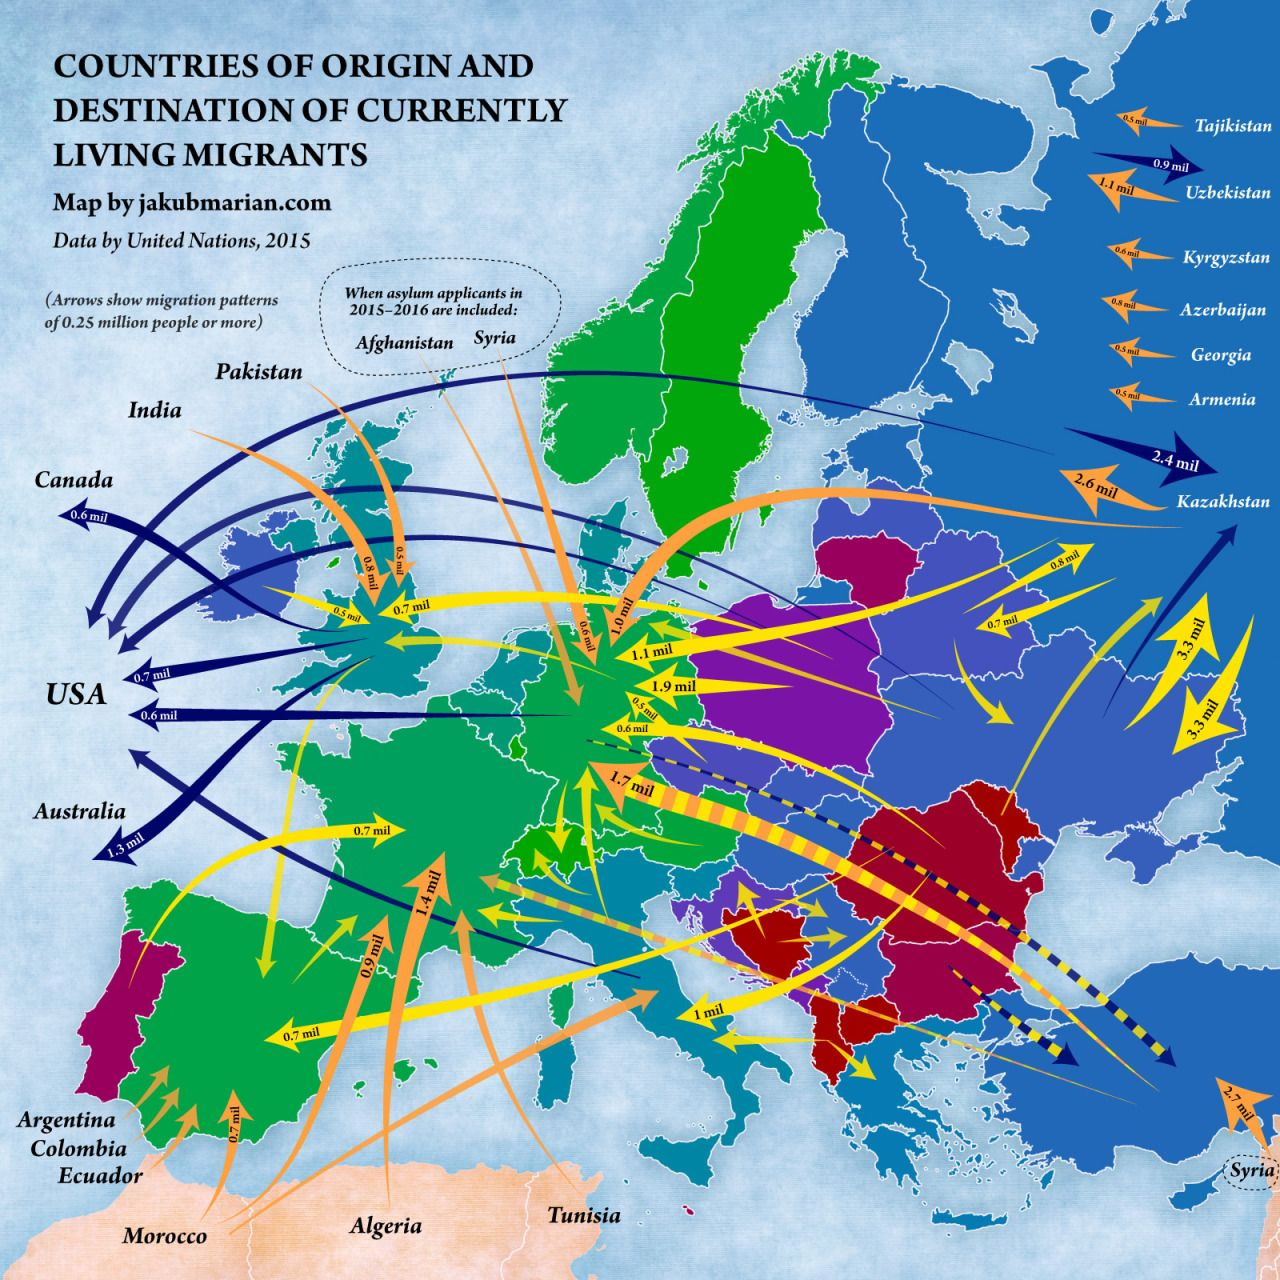 countries of origin and destination of currently living migrants in europe